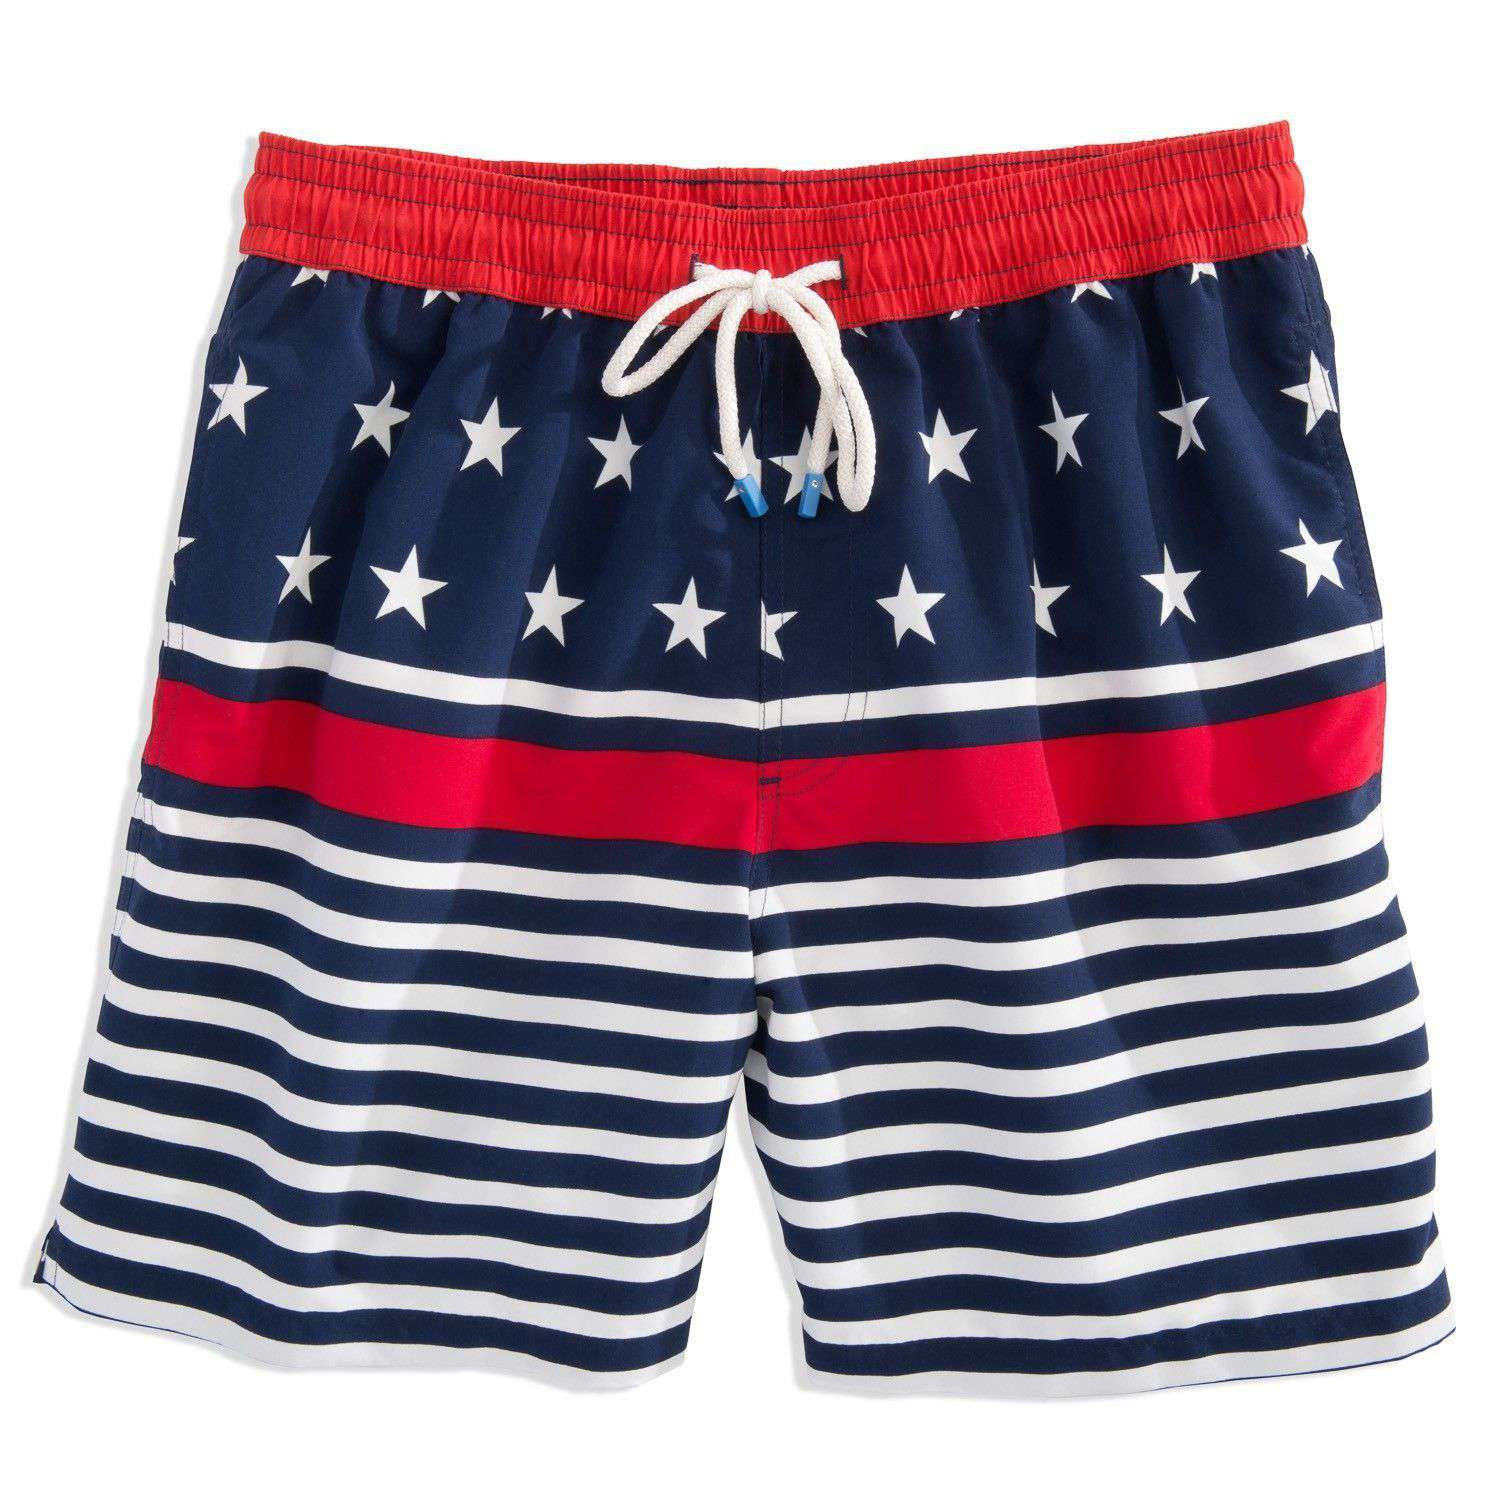 Men's Swimsuits - Stars And Stripes Swim Trunk By Southern Tide